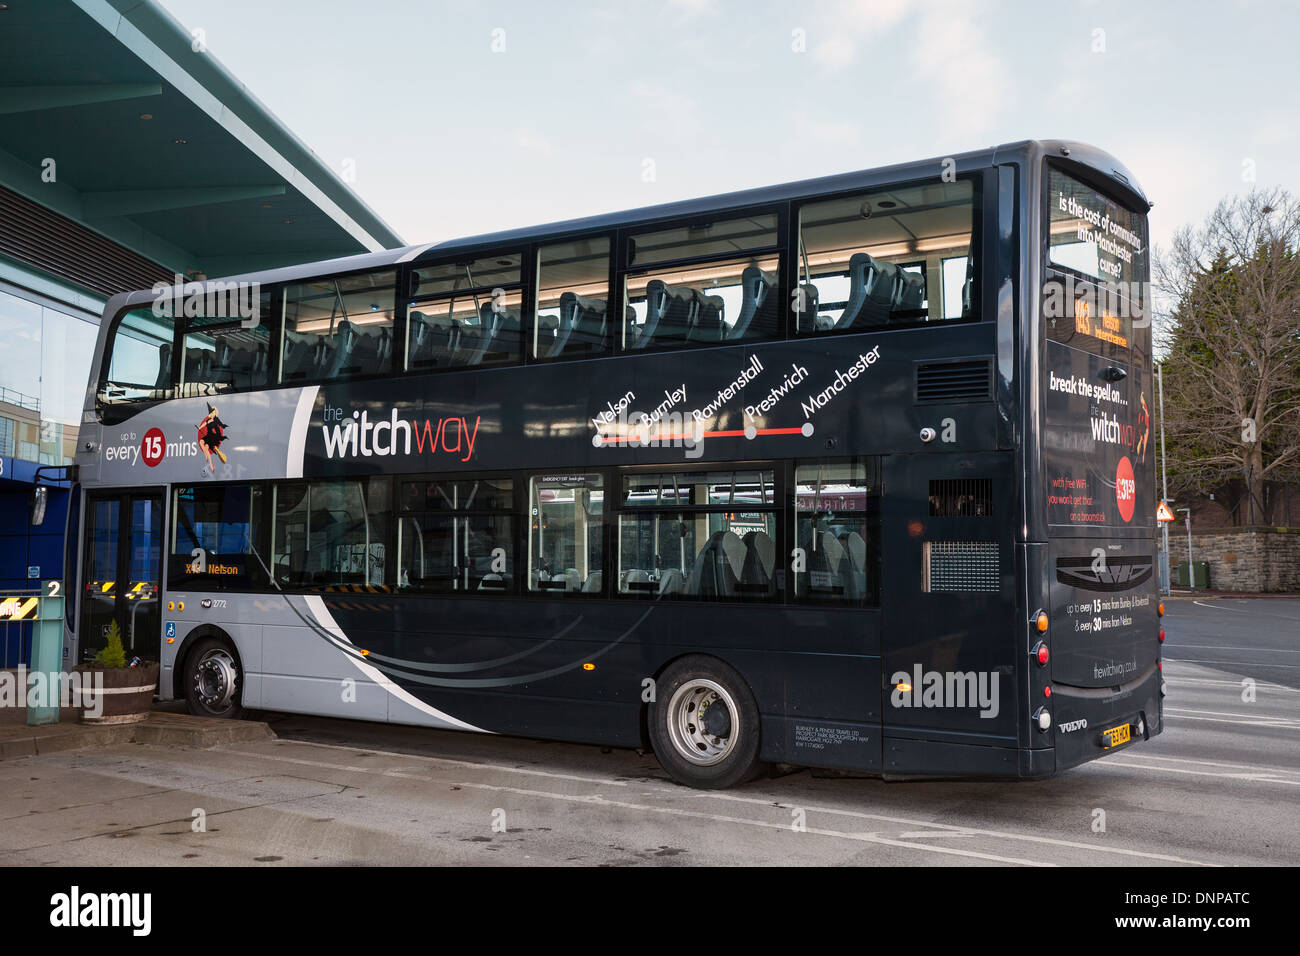 volvo wright gemini witch way buses on long standing bus route x43